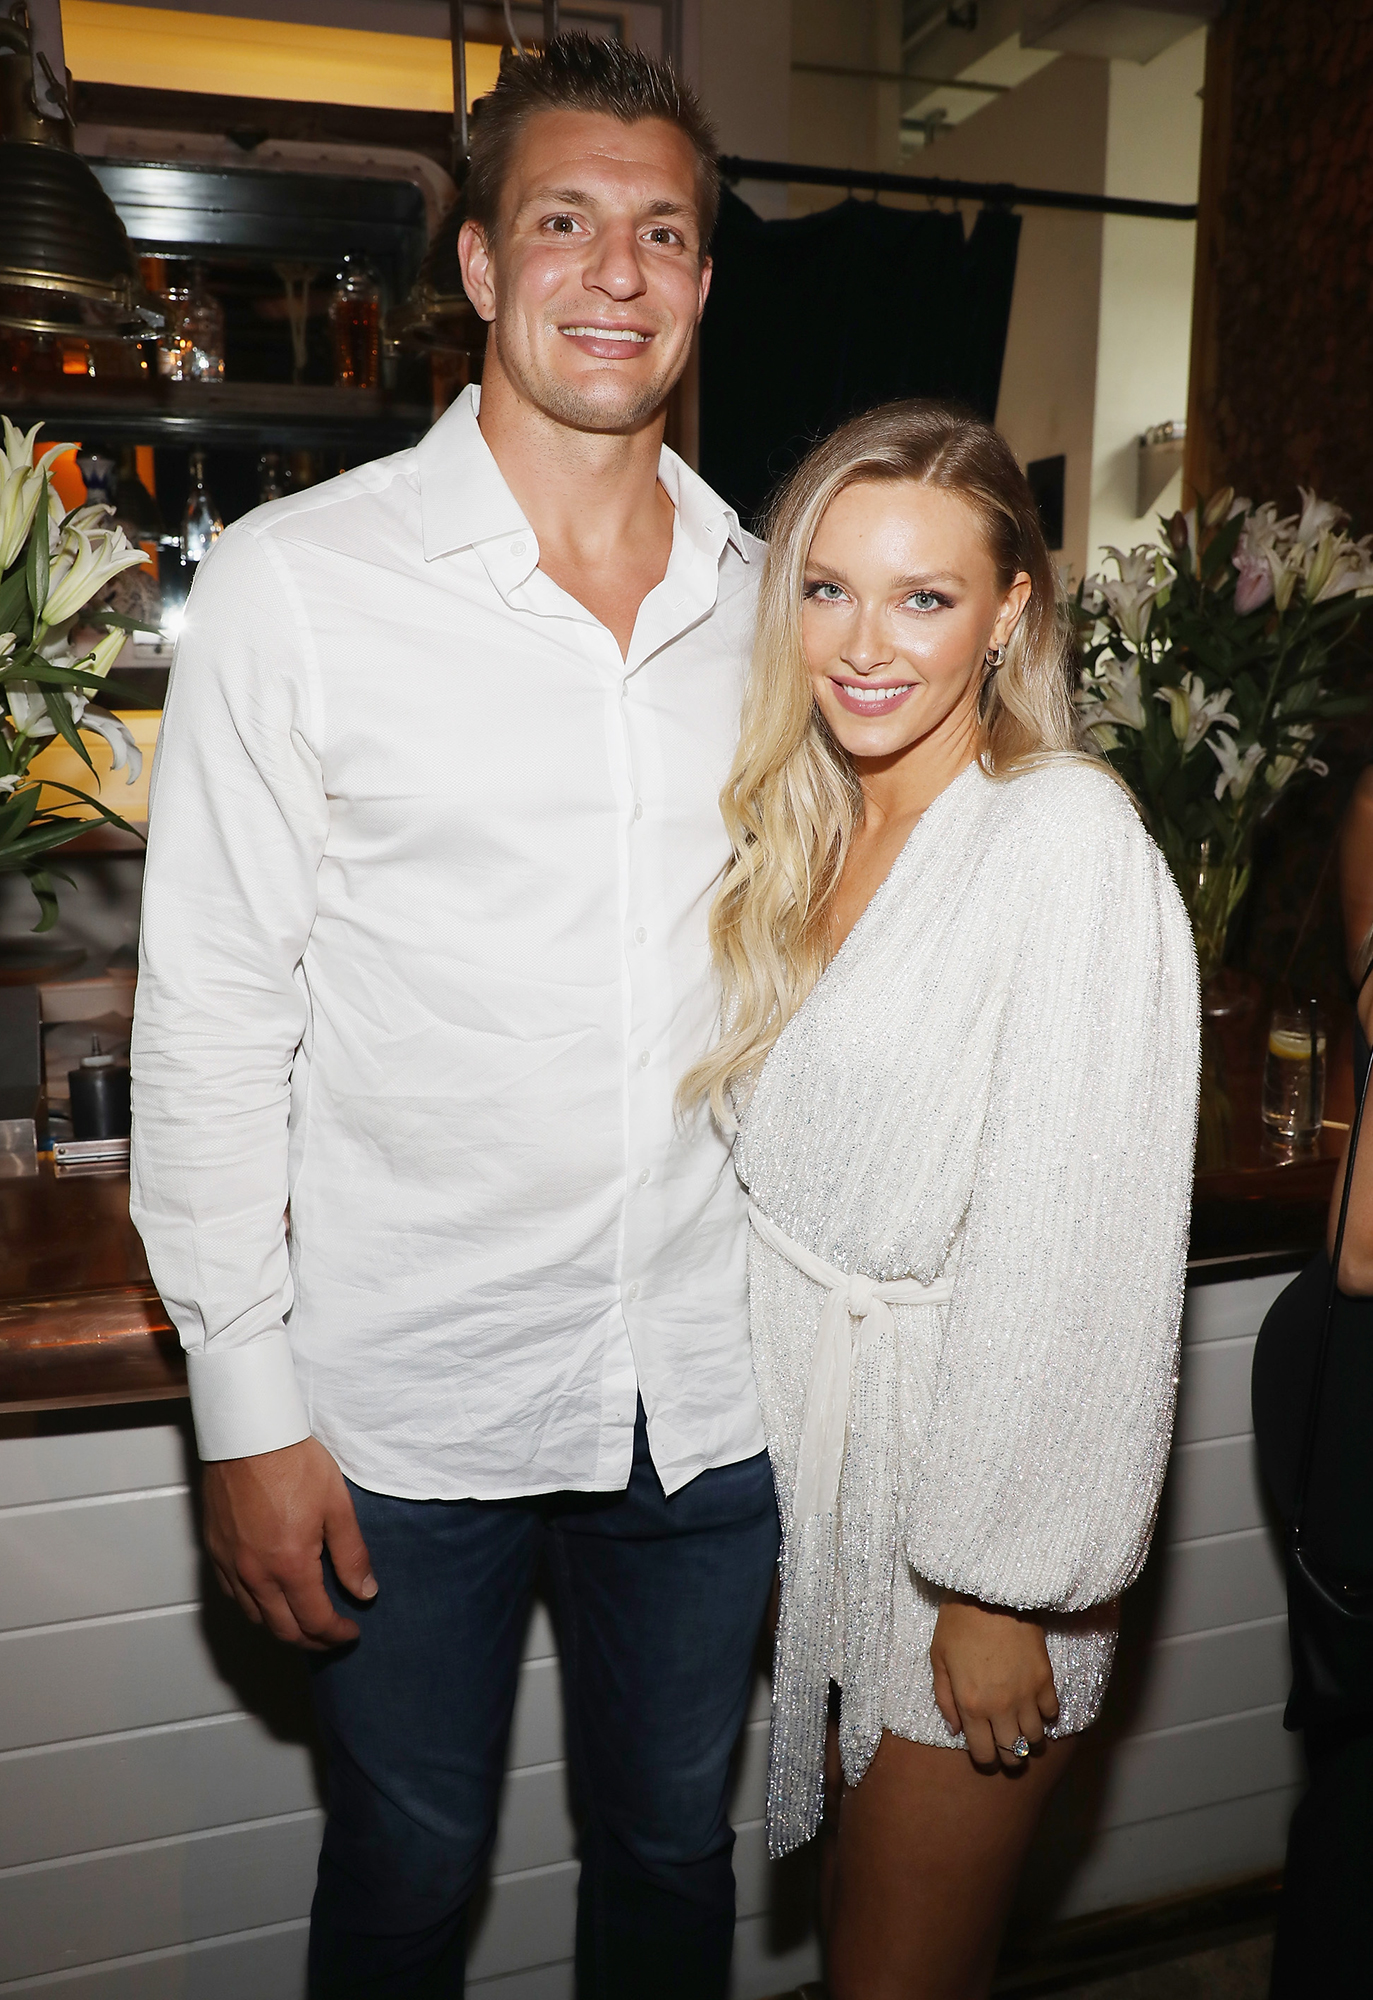 Camille Kostek Sports Illustrated Cover - Rob Gronkowski and Camille Kostek attend the Sports Illustrated Swimsuit 2019 Issue Launch at Seaspice on May 10, 2019 in Miami, Florida.